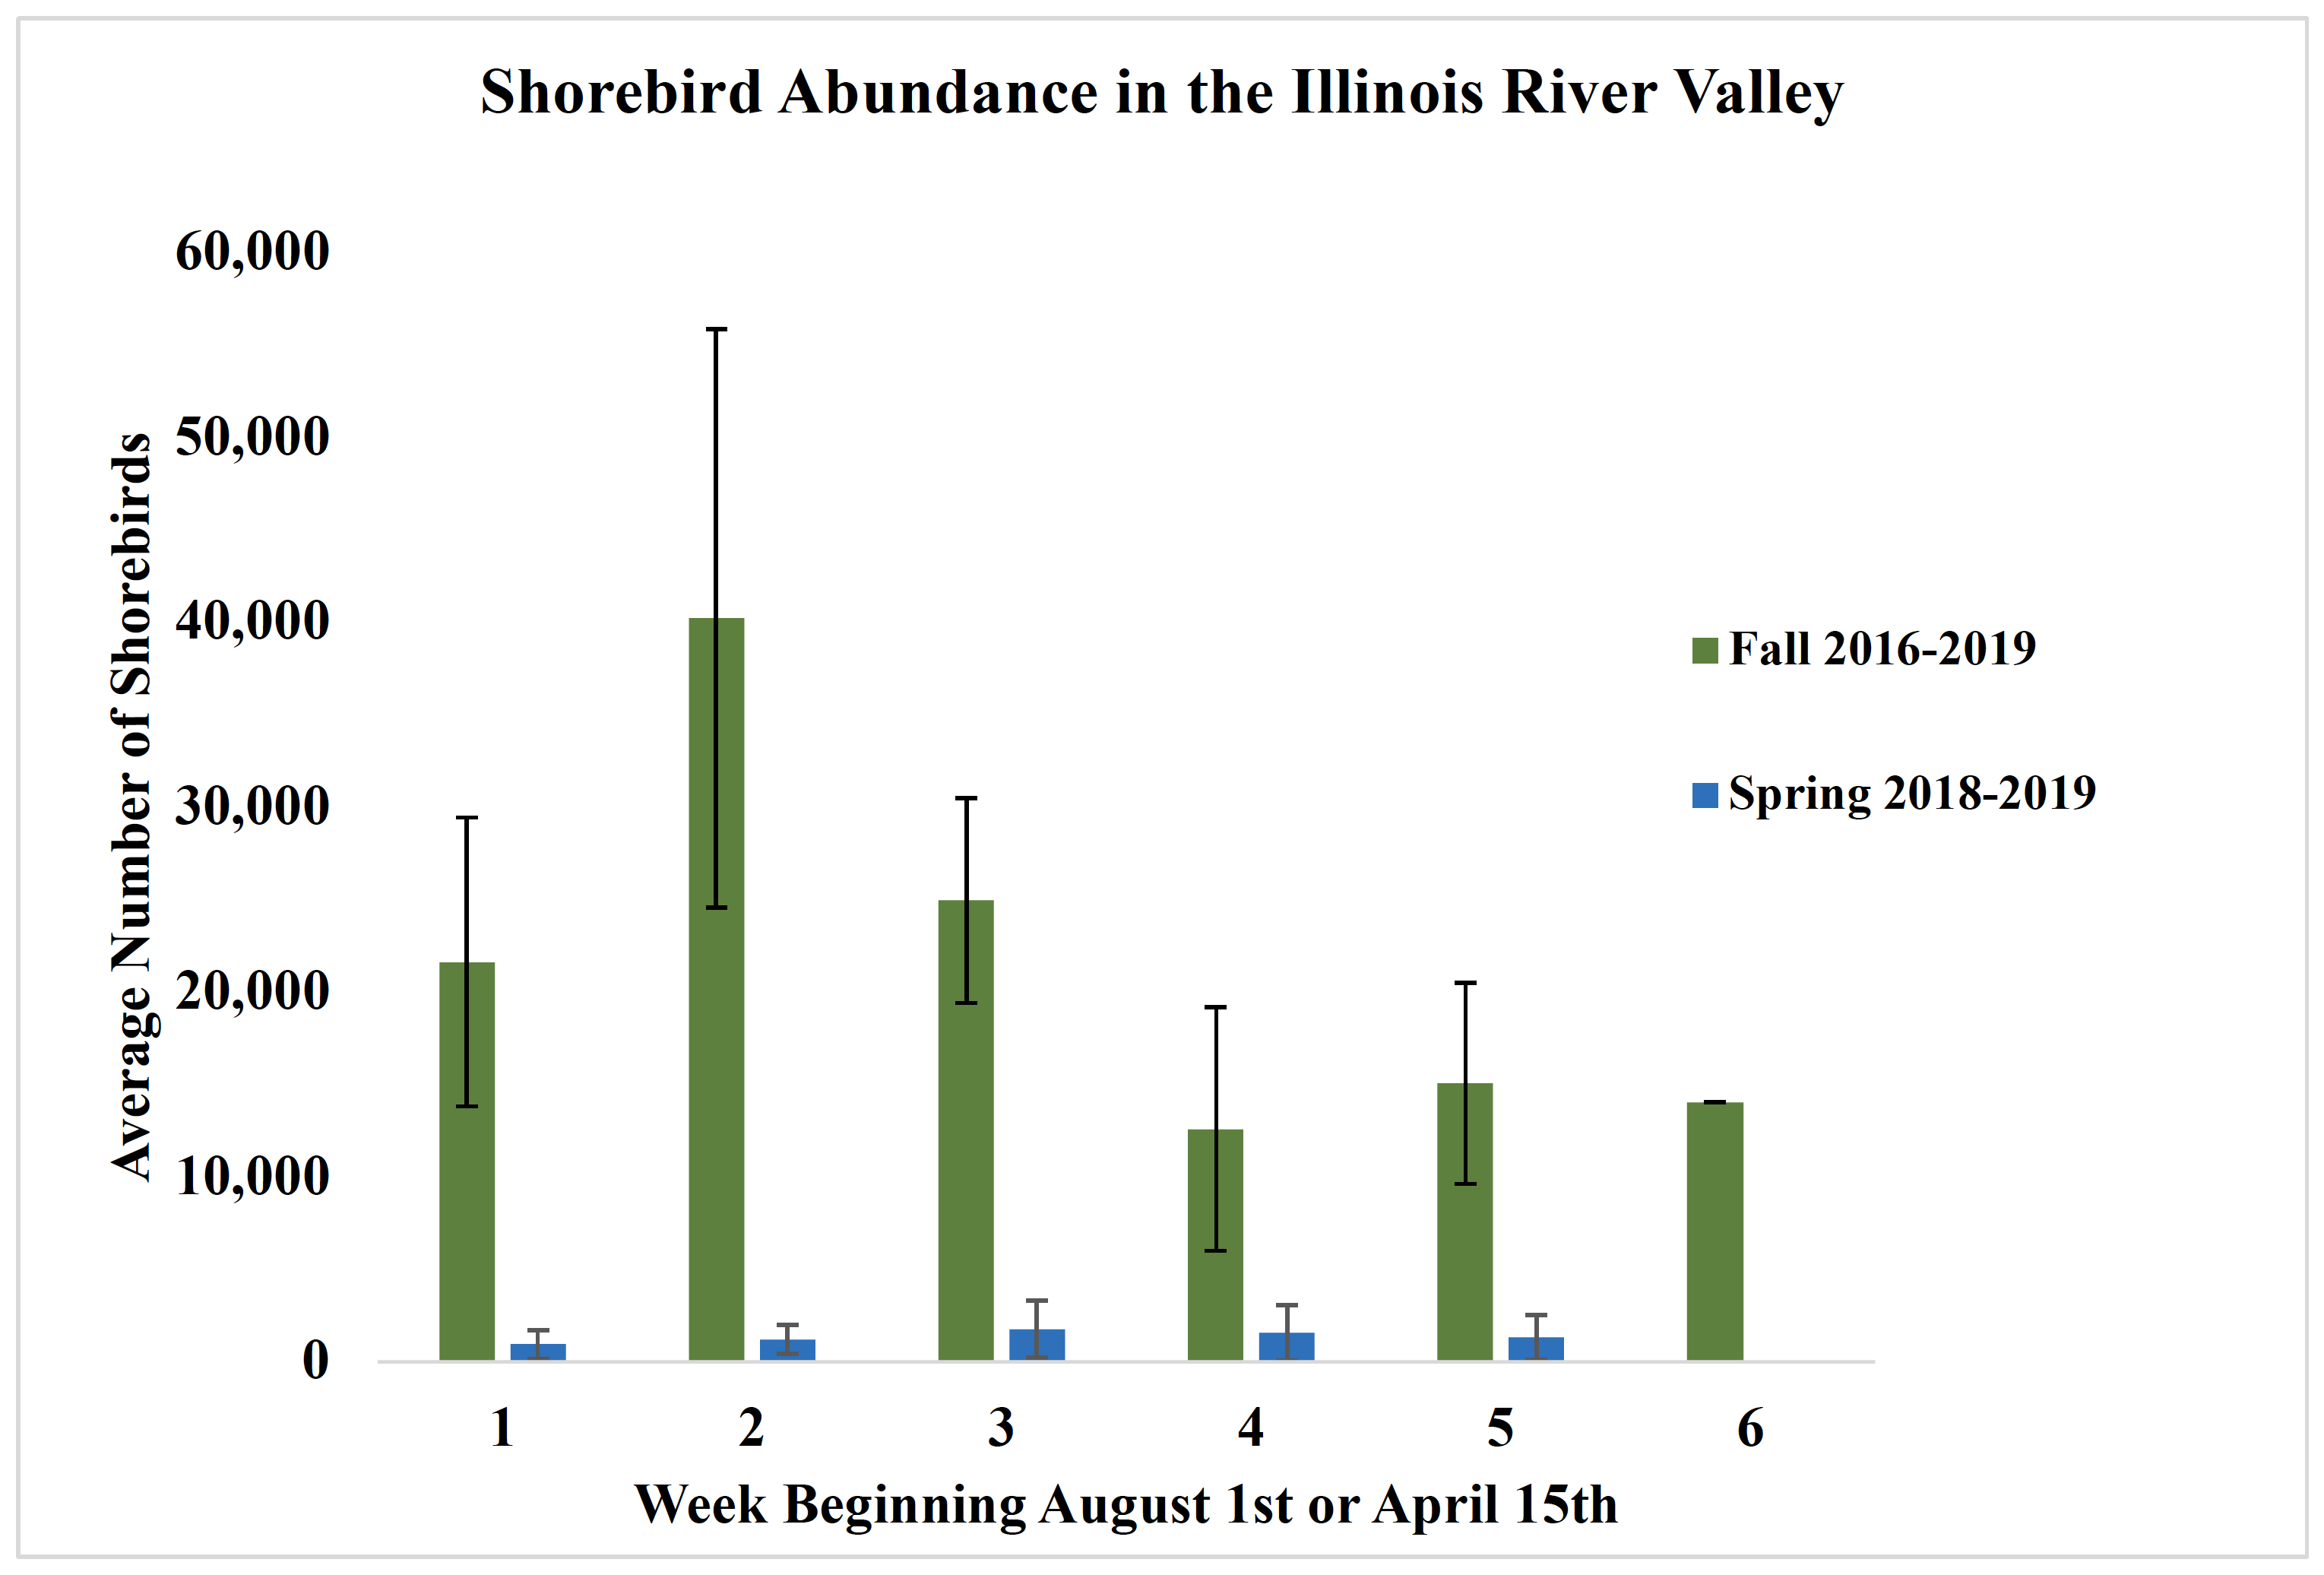 A bar graph indicating the average number of shorebirds estimated per week during aerial surveys in the fall 2016-2019 and spring 2018-2019 in the Illinois River Valley.